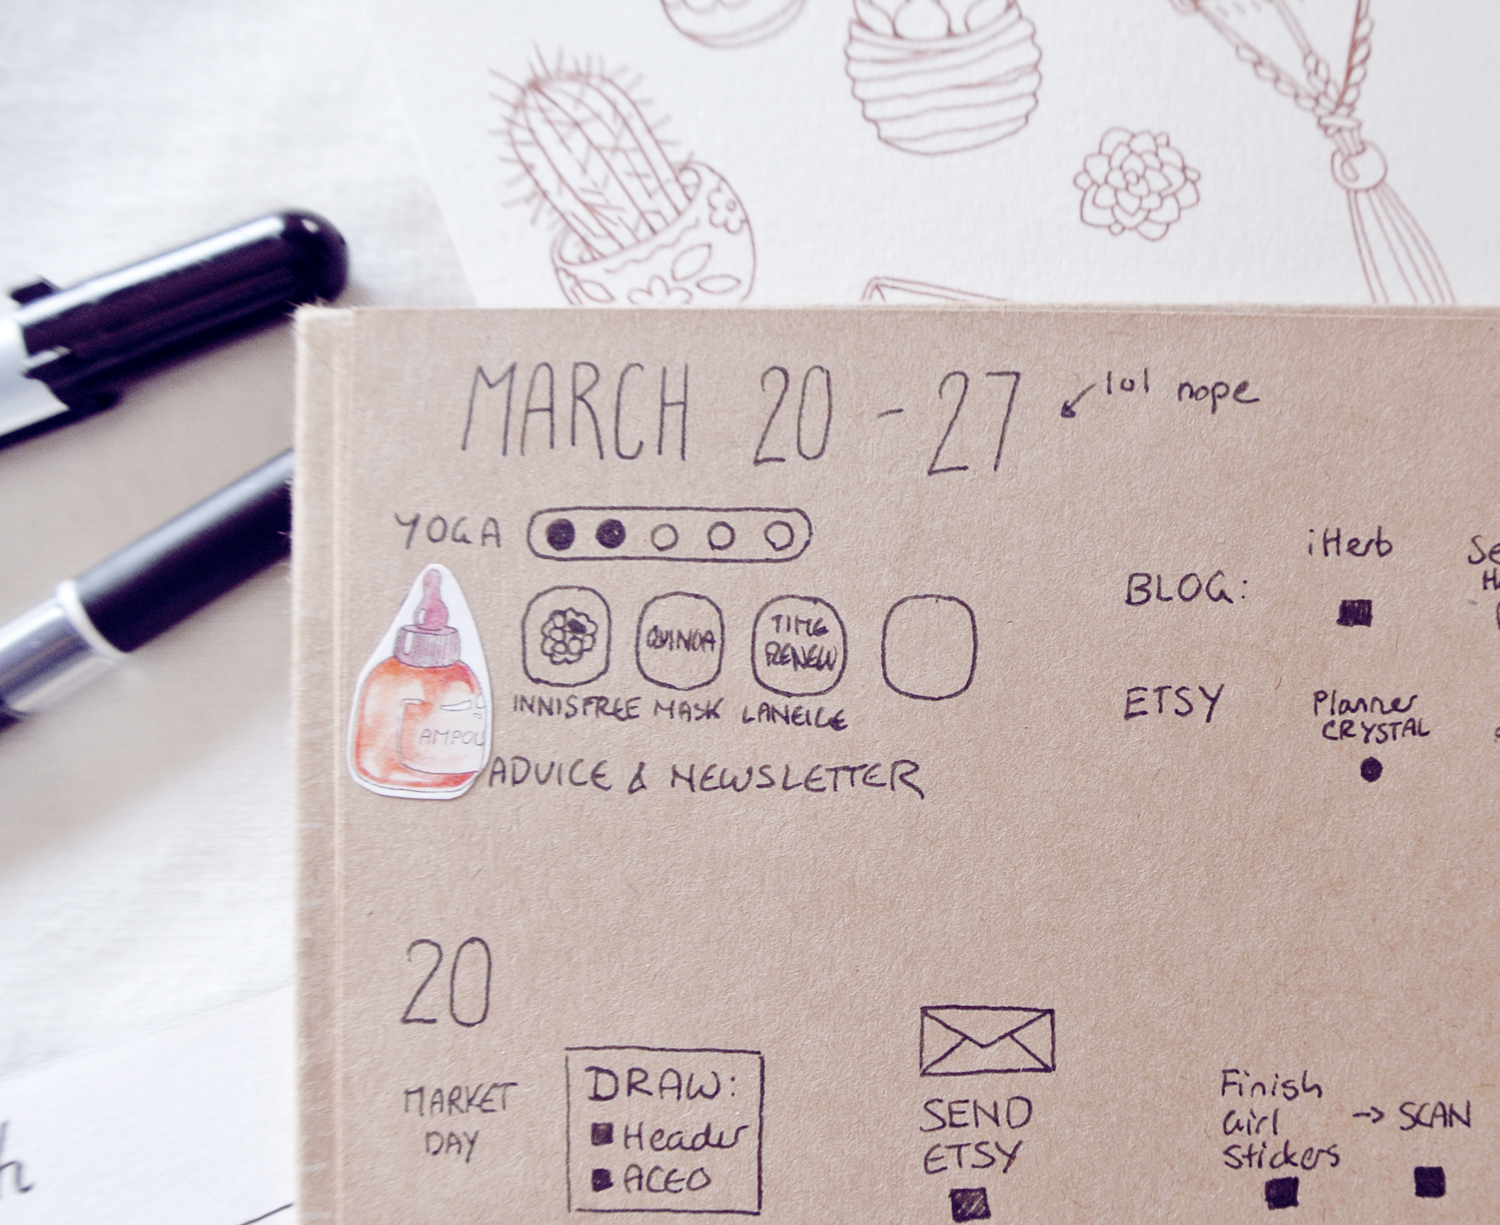 Mistakes in my bullet journal. Messed up the date of all things... and the stickers hides a smudged drawing for my skincare habit tracker.